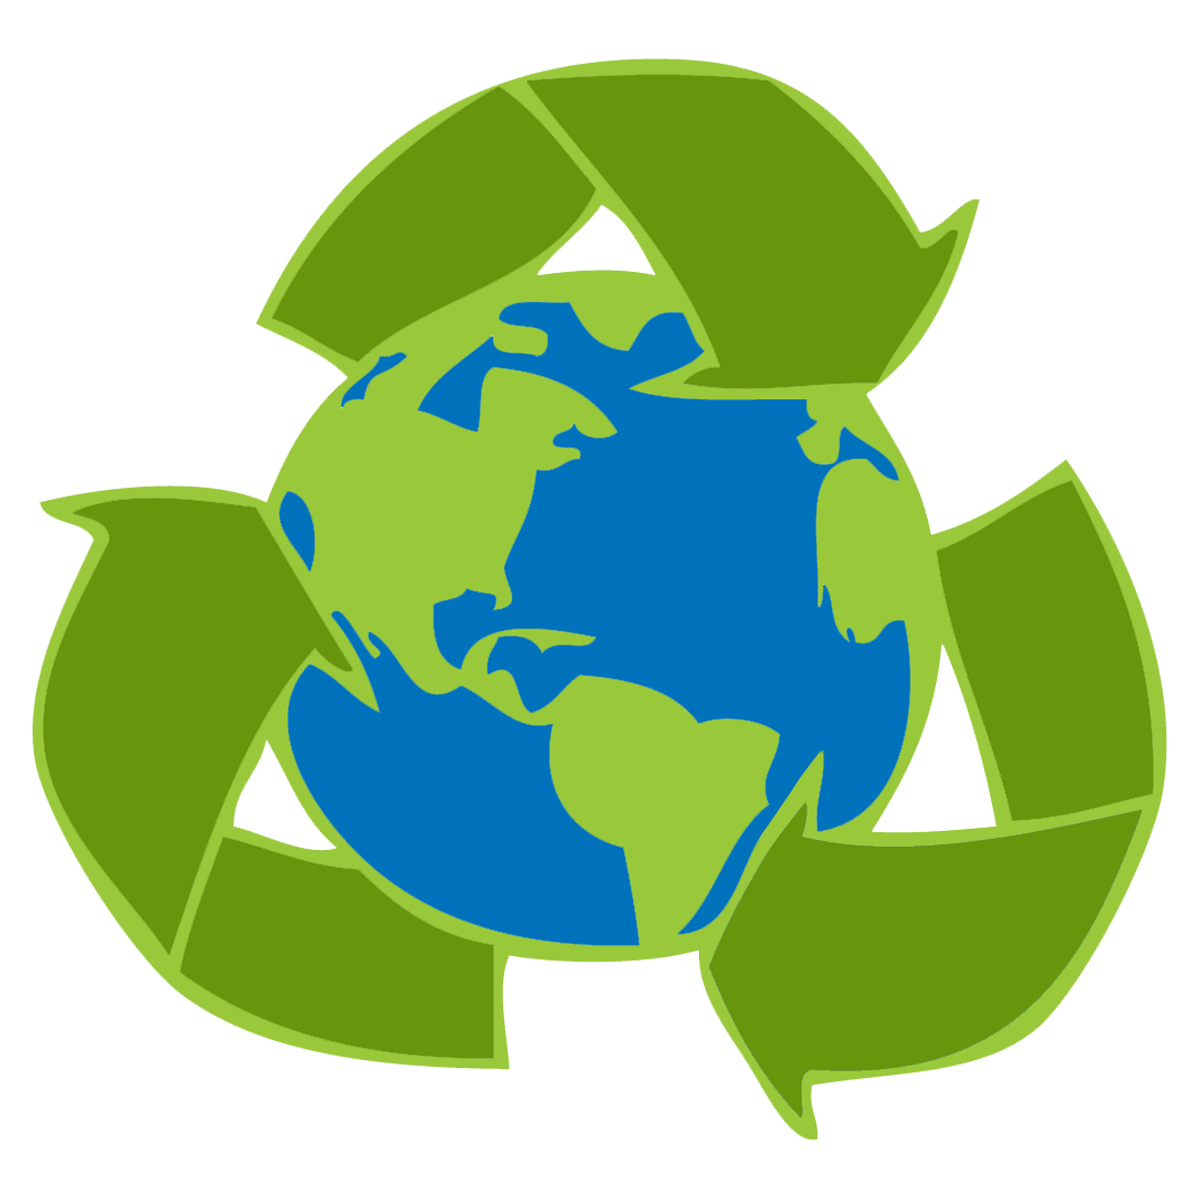 clipart save the earth - photo #19